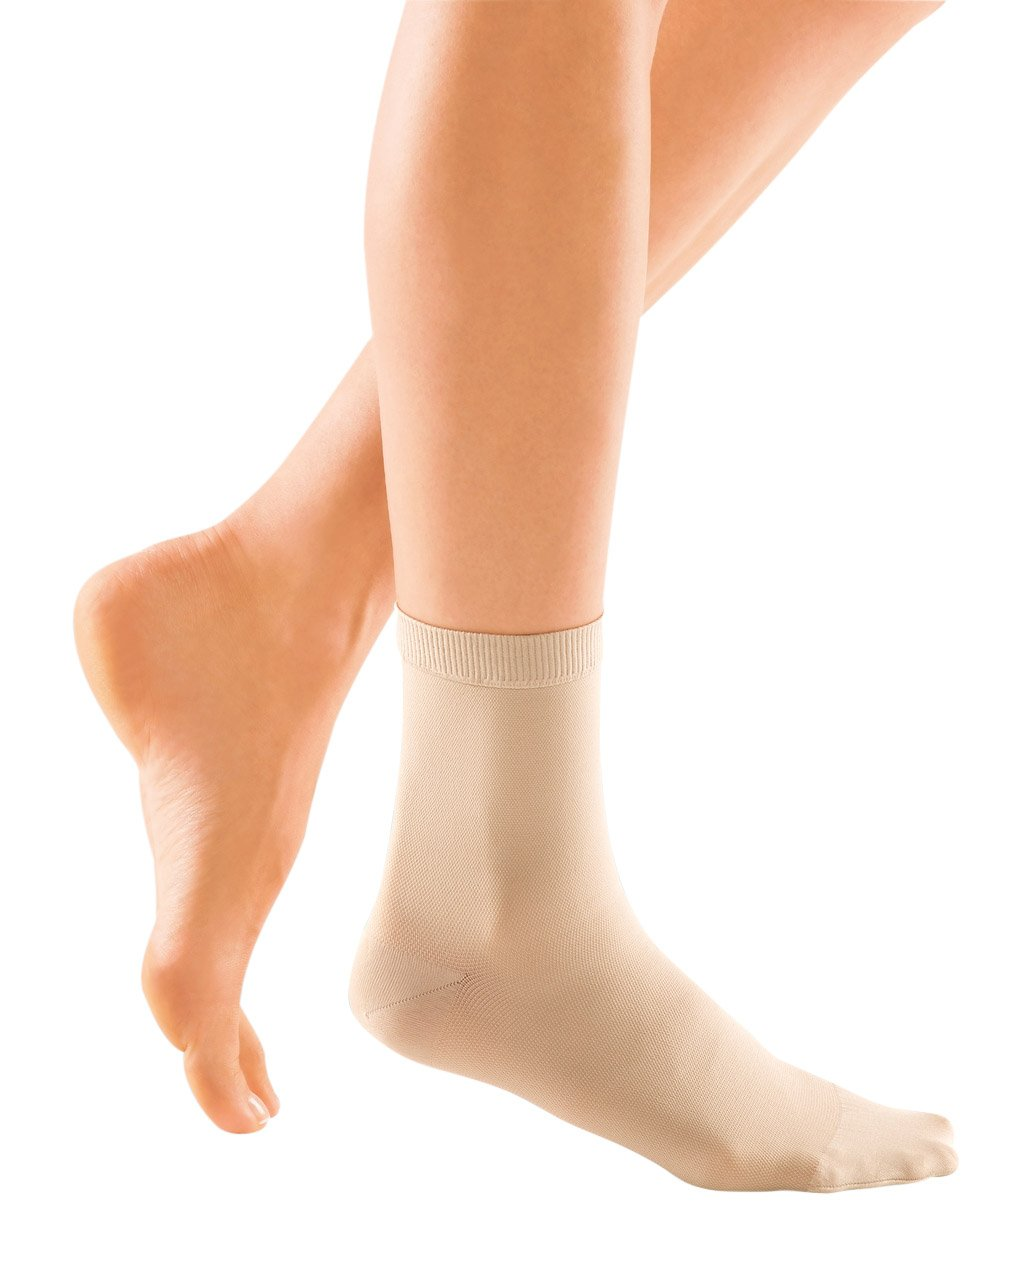 circaid Compression Anklets providing mild, even compression for foot & ankle